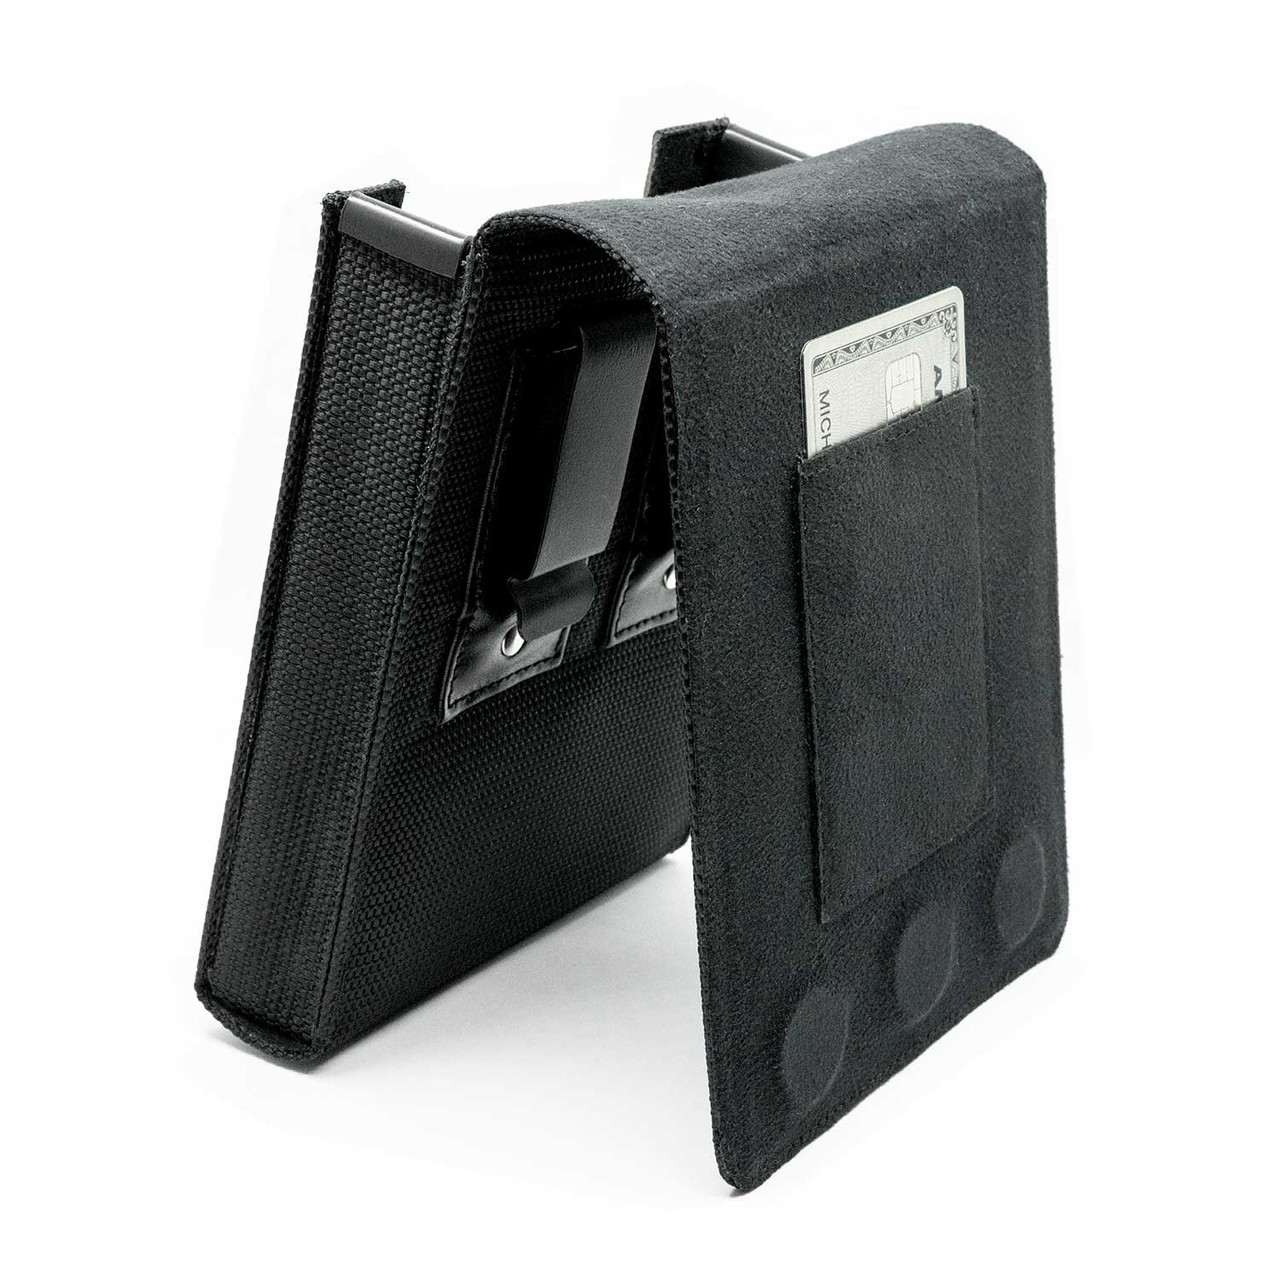 FN 509 Marine Corps Tactical Patch Holster